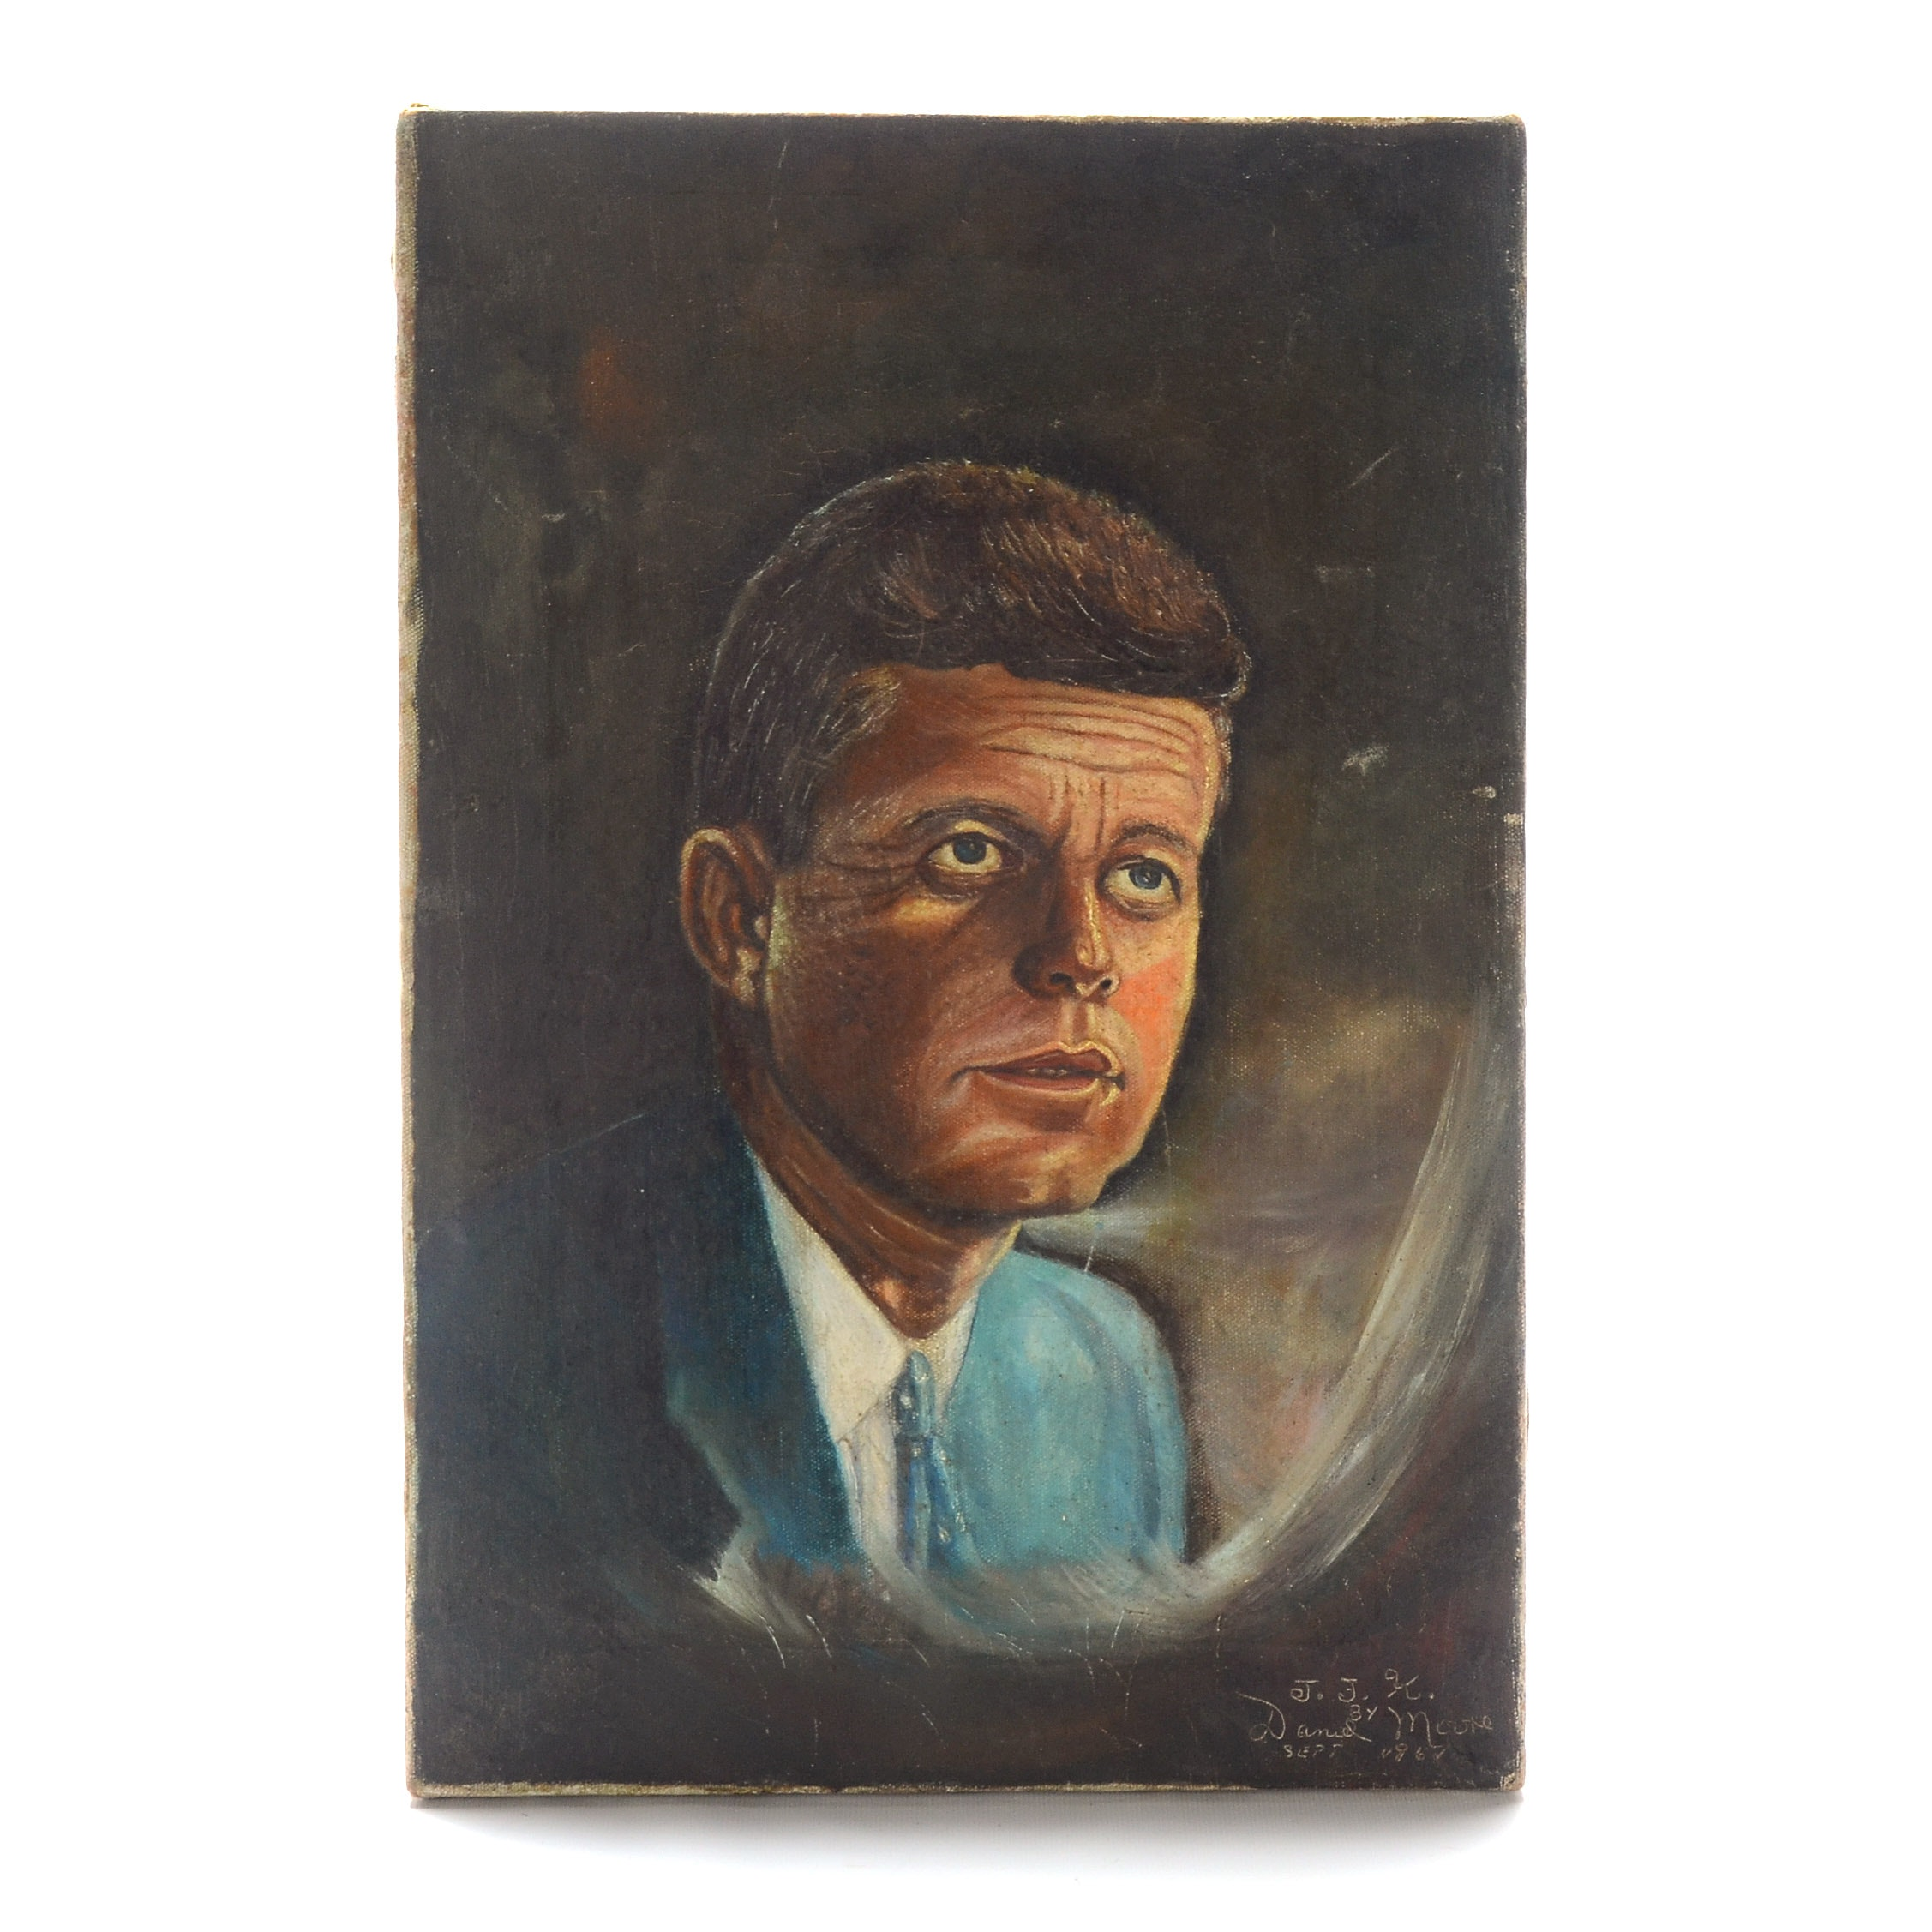 Daniel Moore Signed 1967 Oil Painting on Canvas of John F. Kennedy